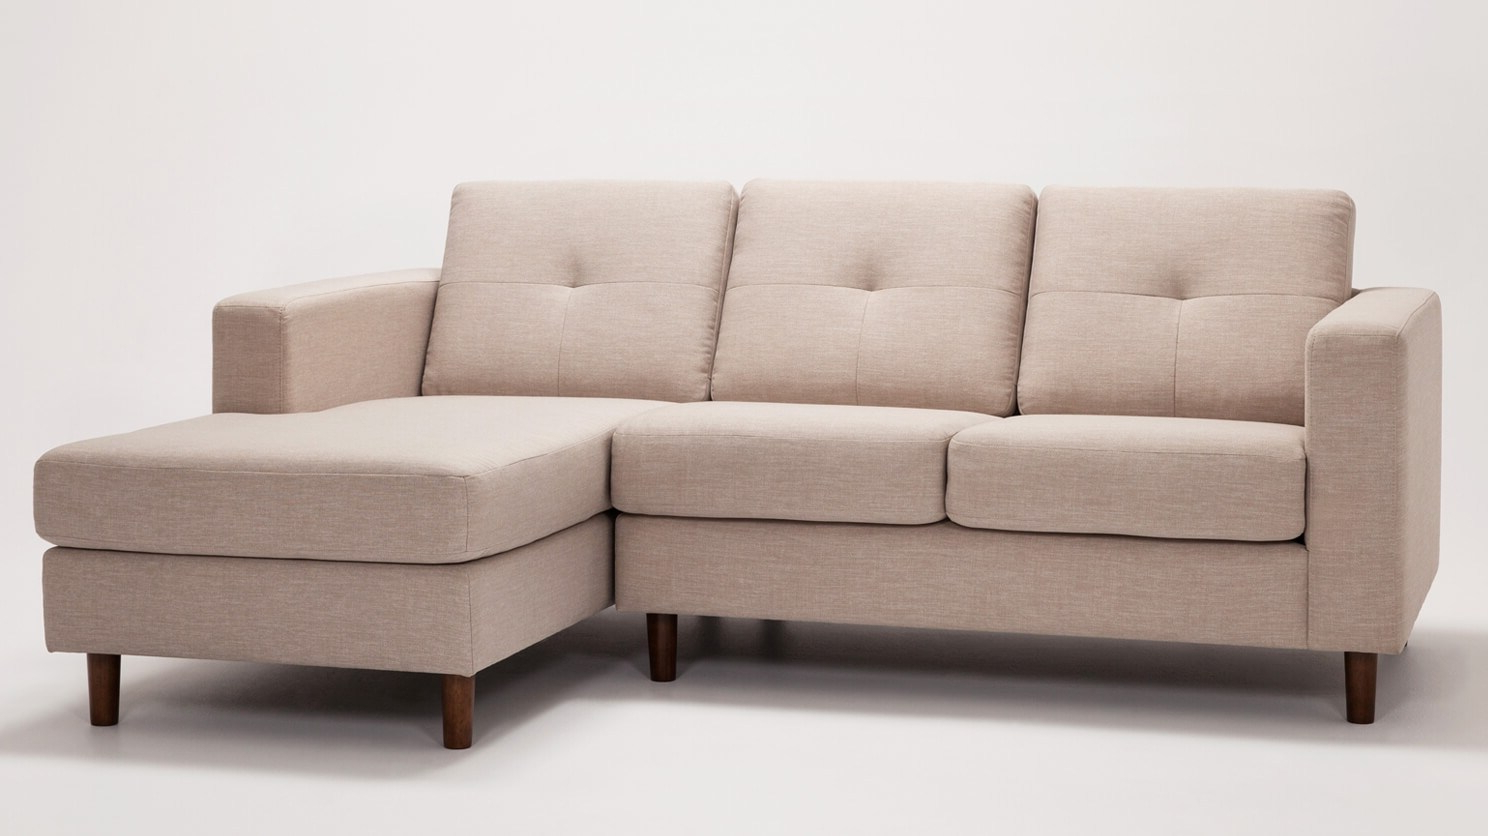 Magnificent 30129 Sl Sc 2 Sectionals Solo Sectional Key Largo Almond Throughout 2018 Mcculla Sofa Sectionals With Reversible Chaise (View 19 of 20)